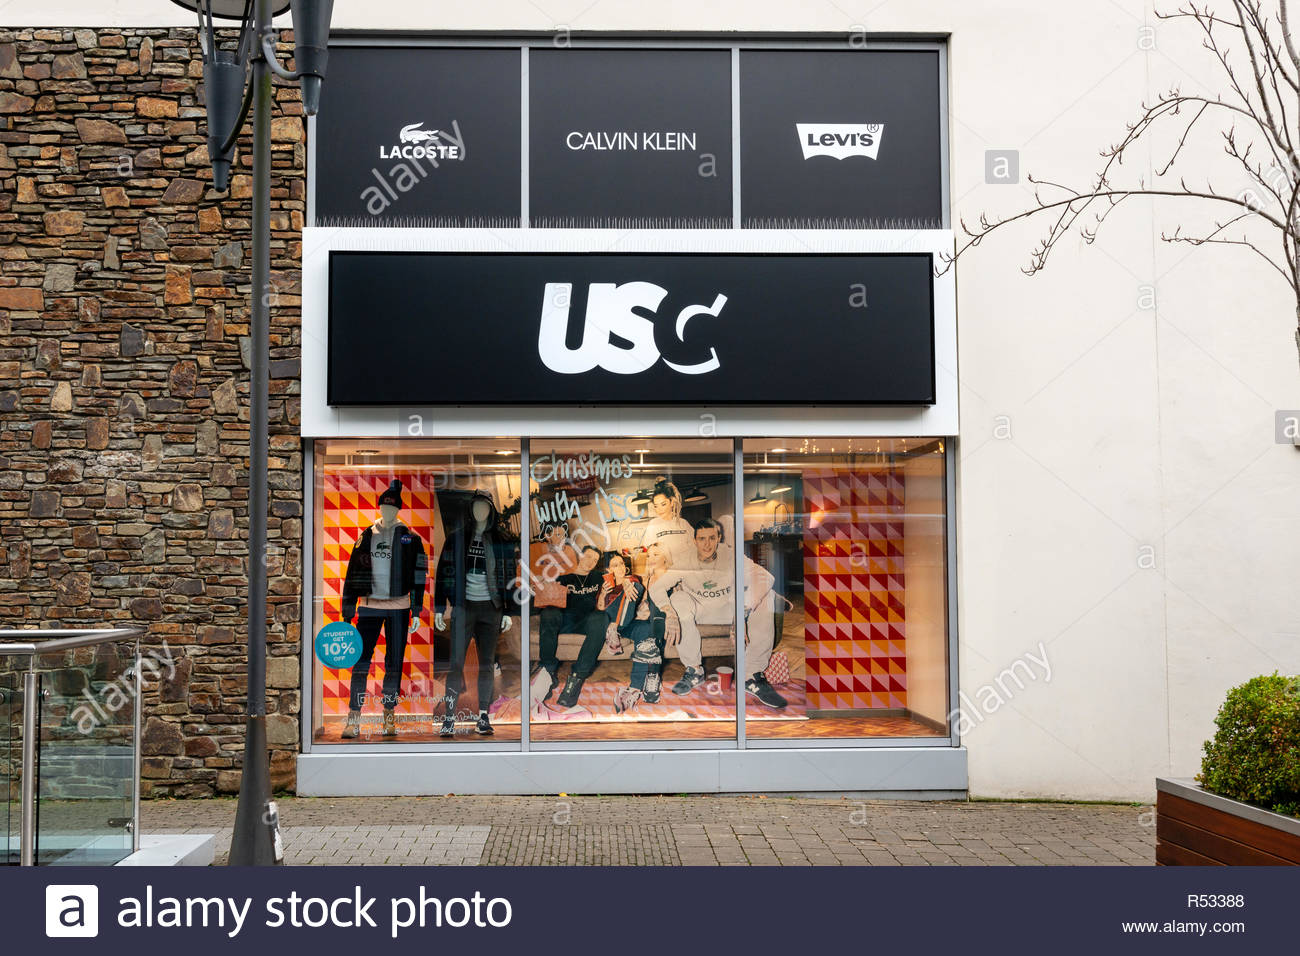 USC shop front, part of the newly opened 'Sports Direct' store on Scotts Street. Killarney, County Kerry, Ireland - Stock Image